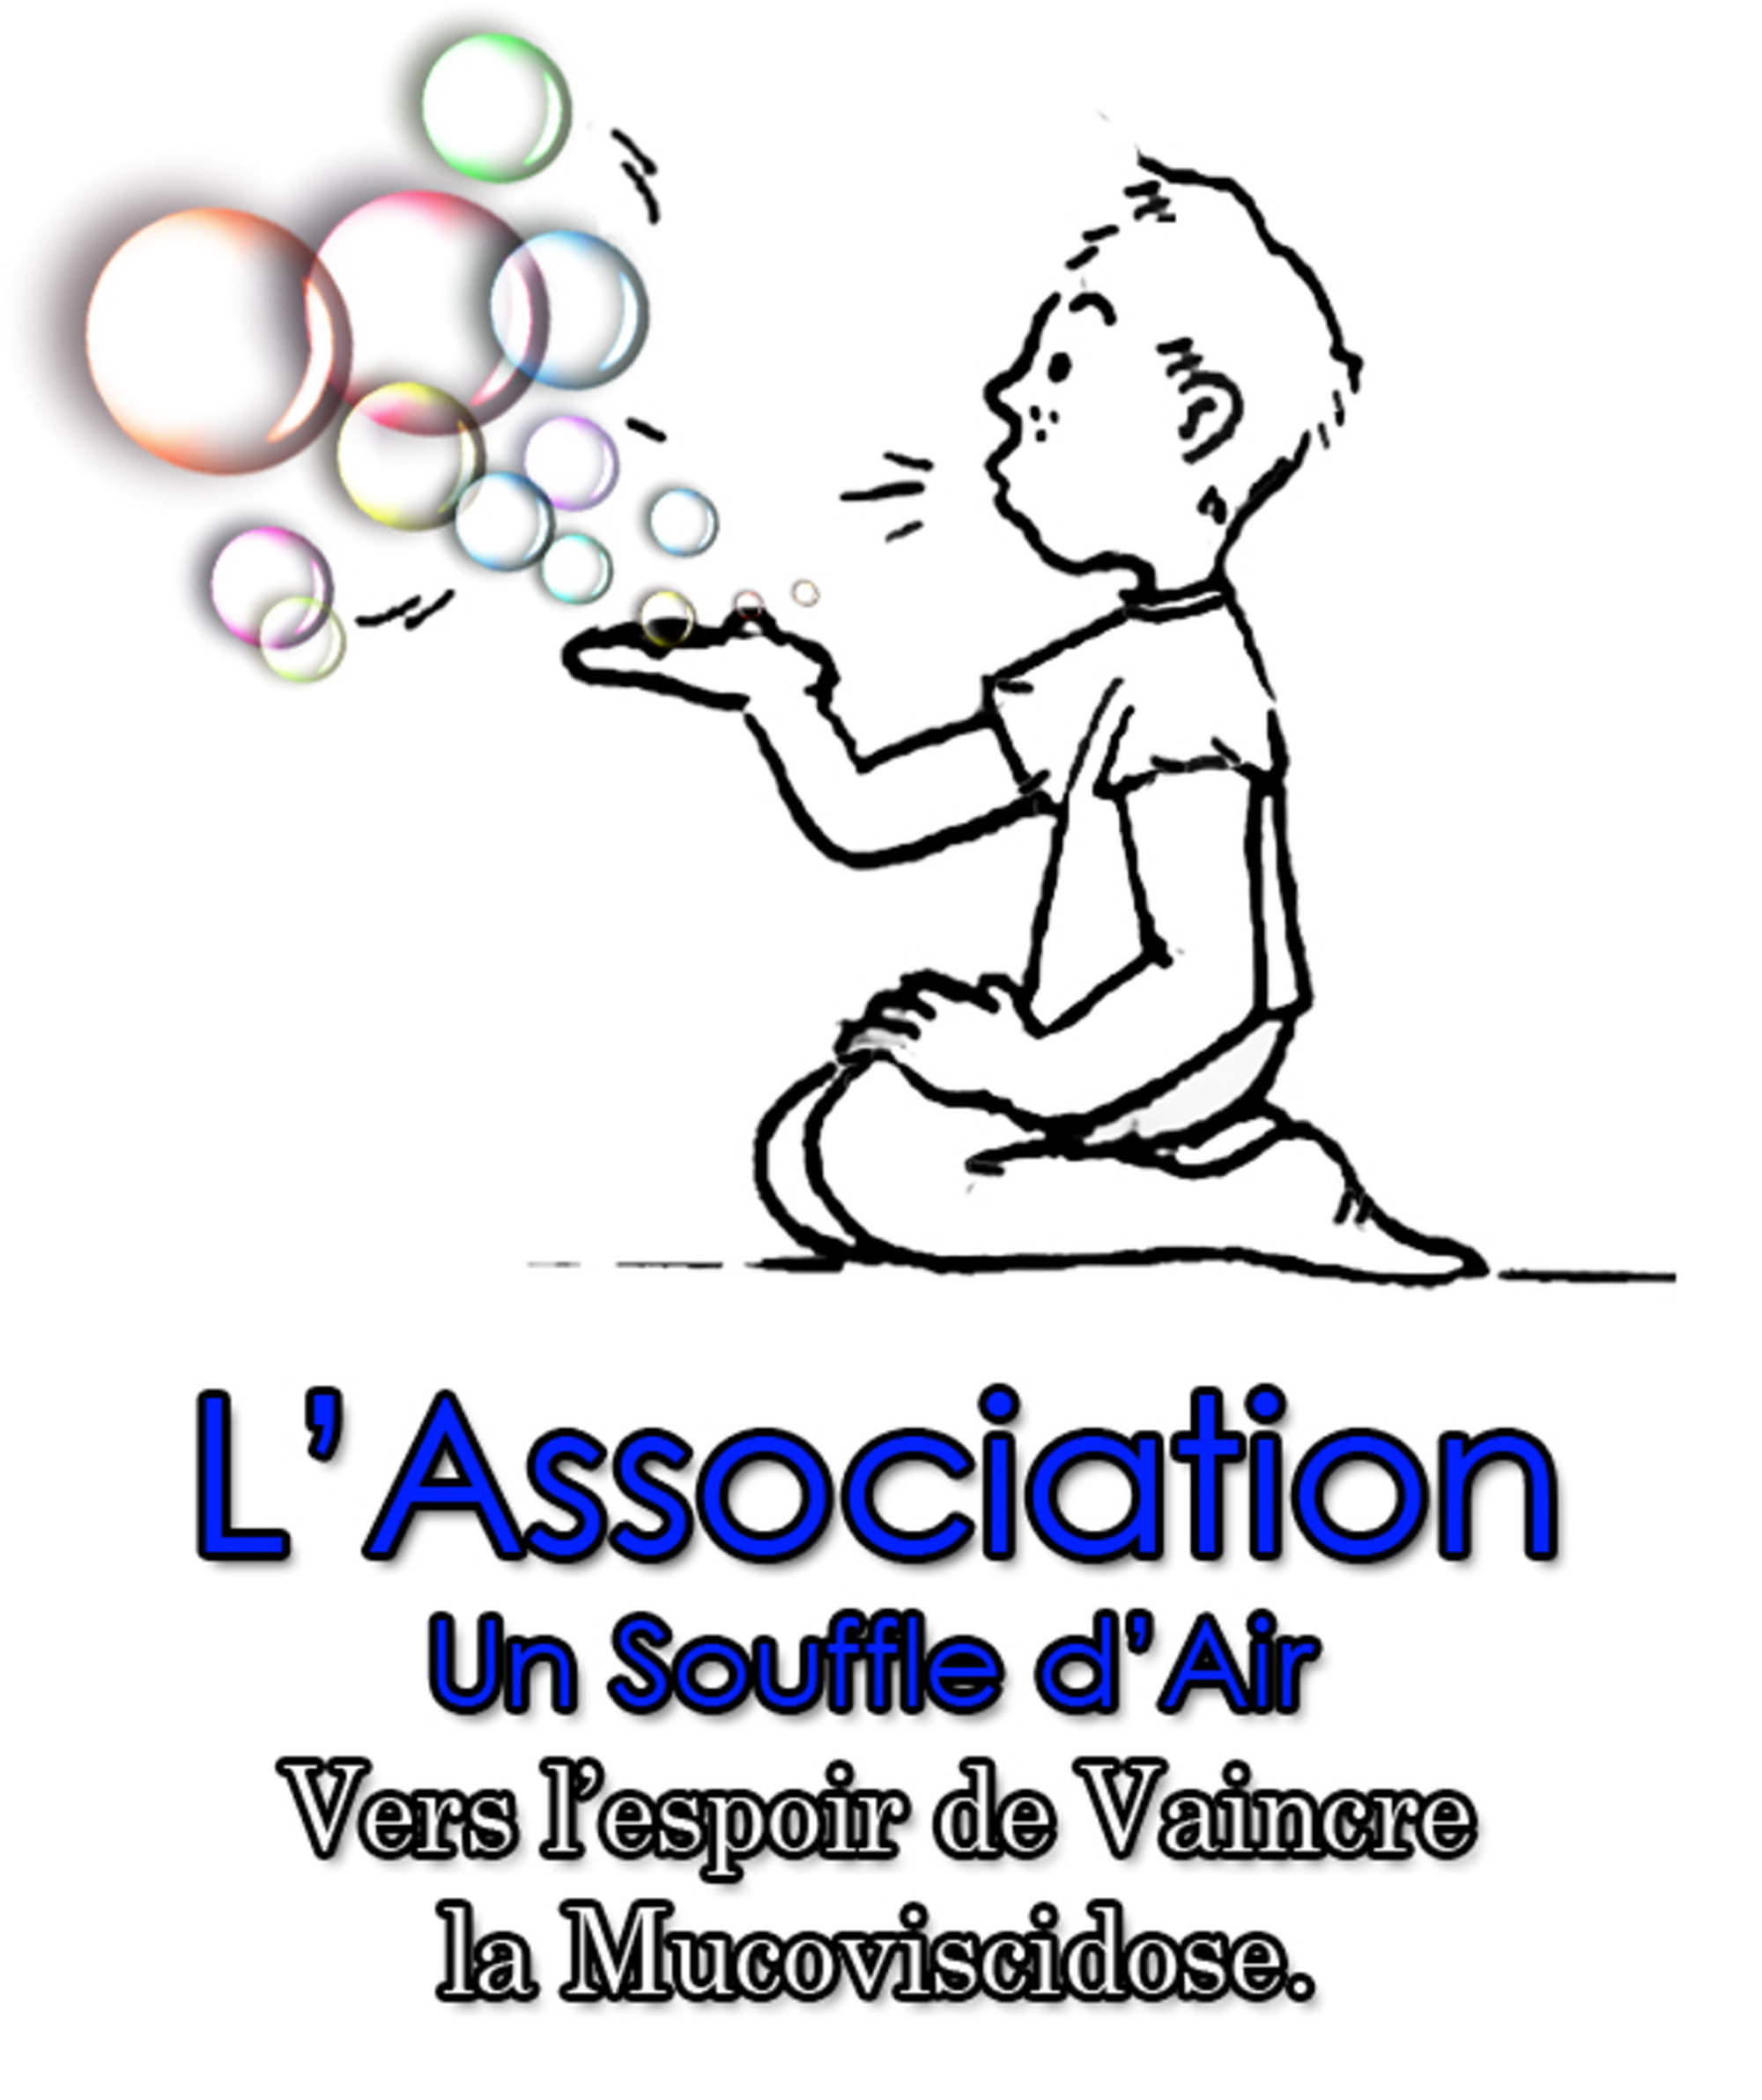 Association un souffle d'air